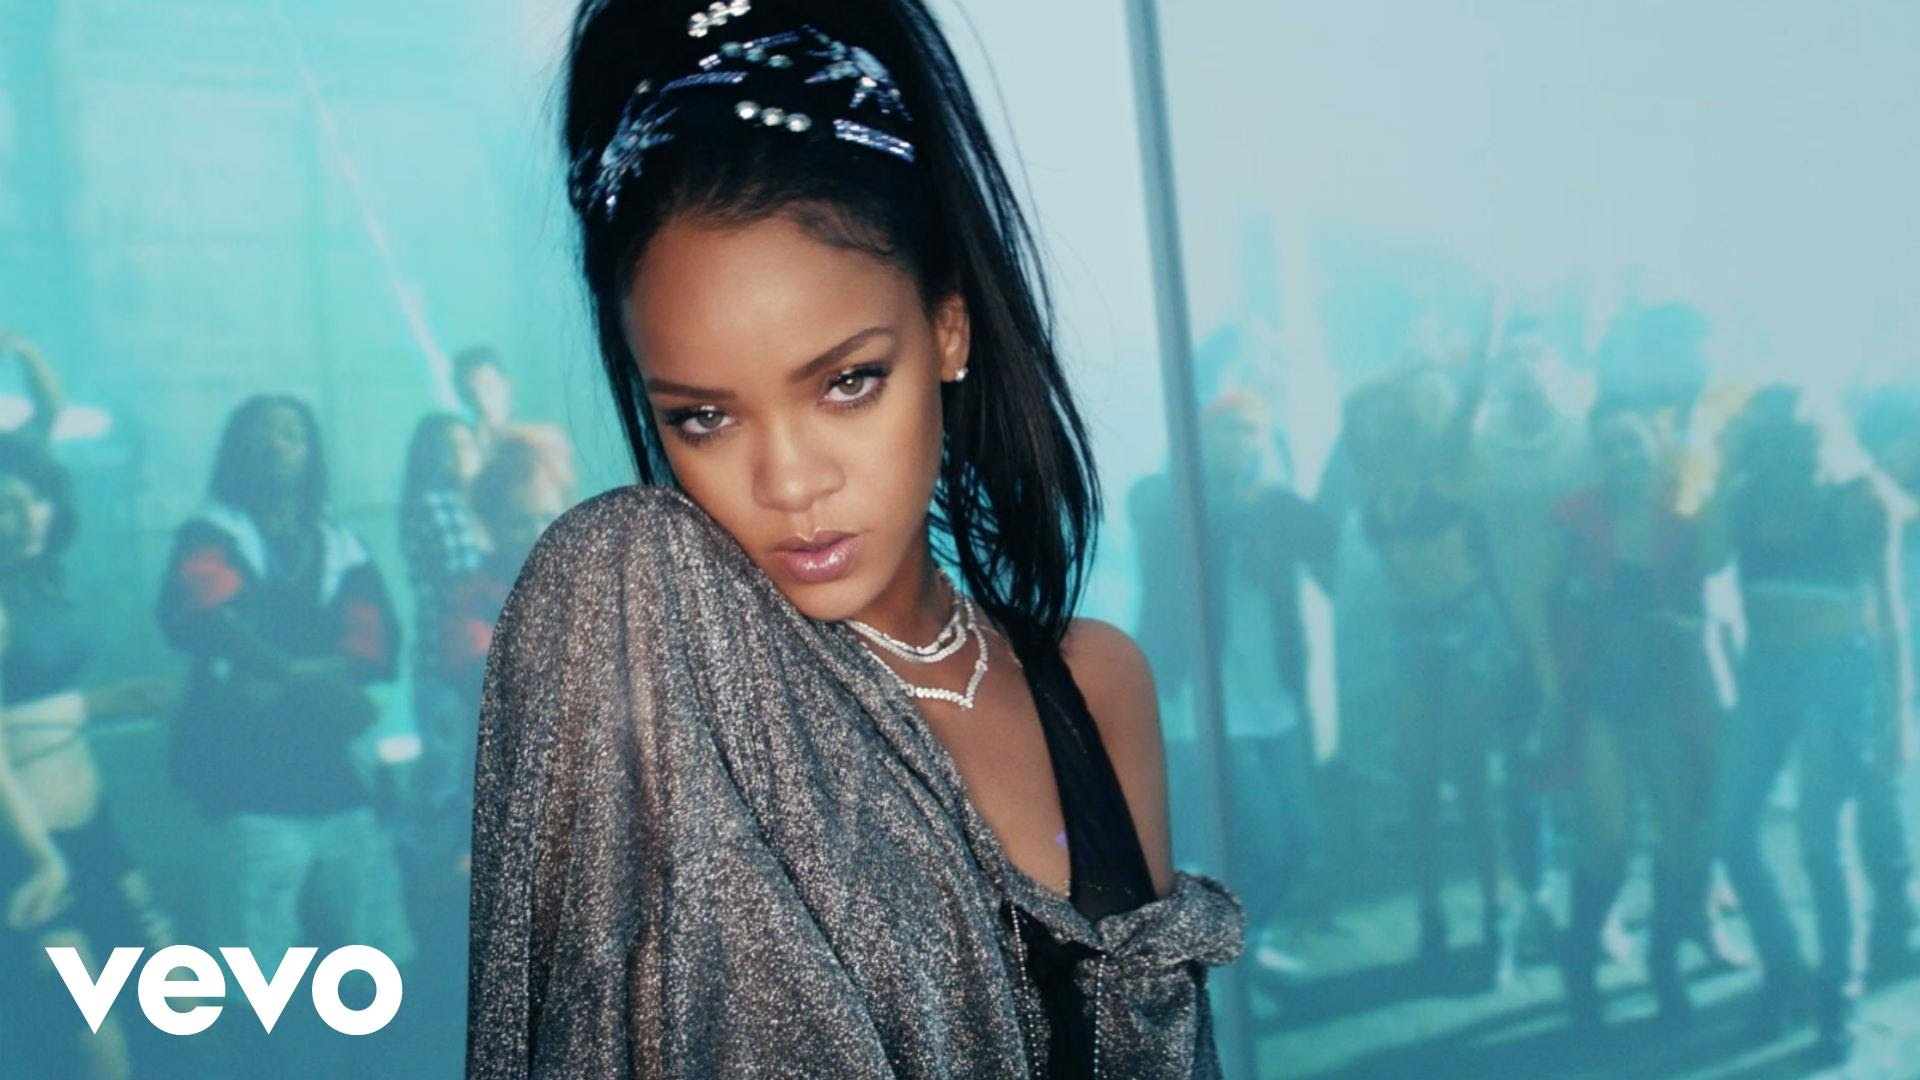 Calvin Harris – This Is What You Came For ft. Rihanna